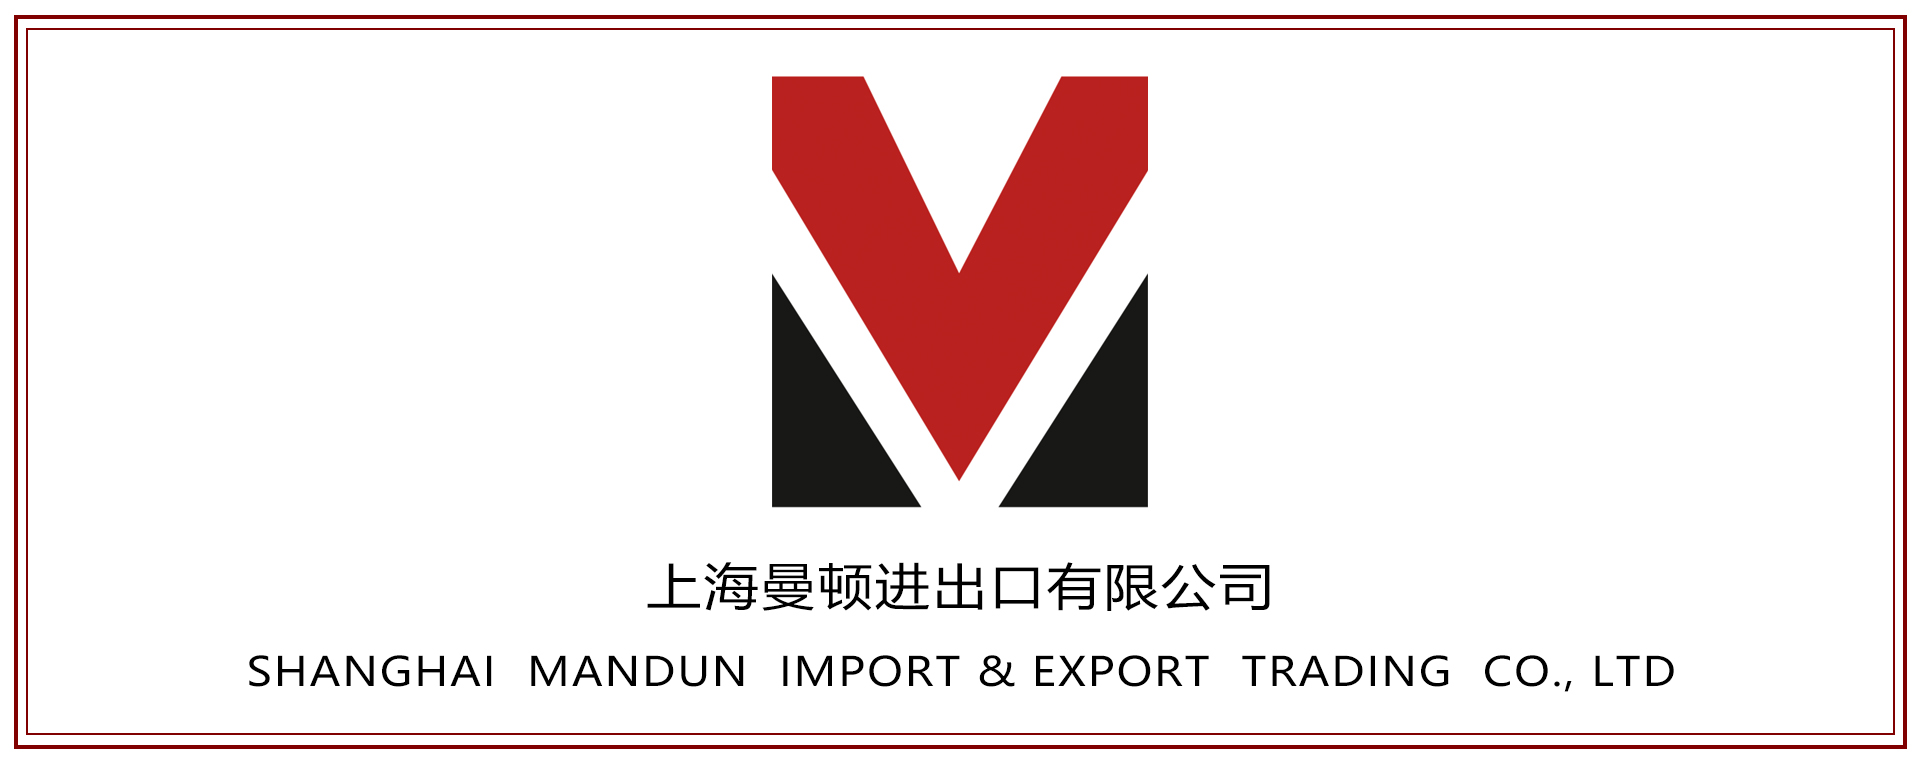 SHANGHAI MANDUN IMPORT & EXPORT TRADING CO.,LTD.